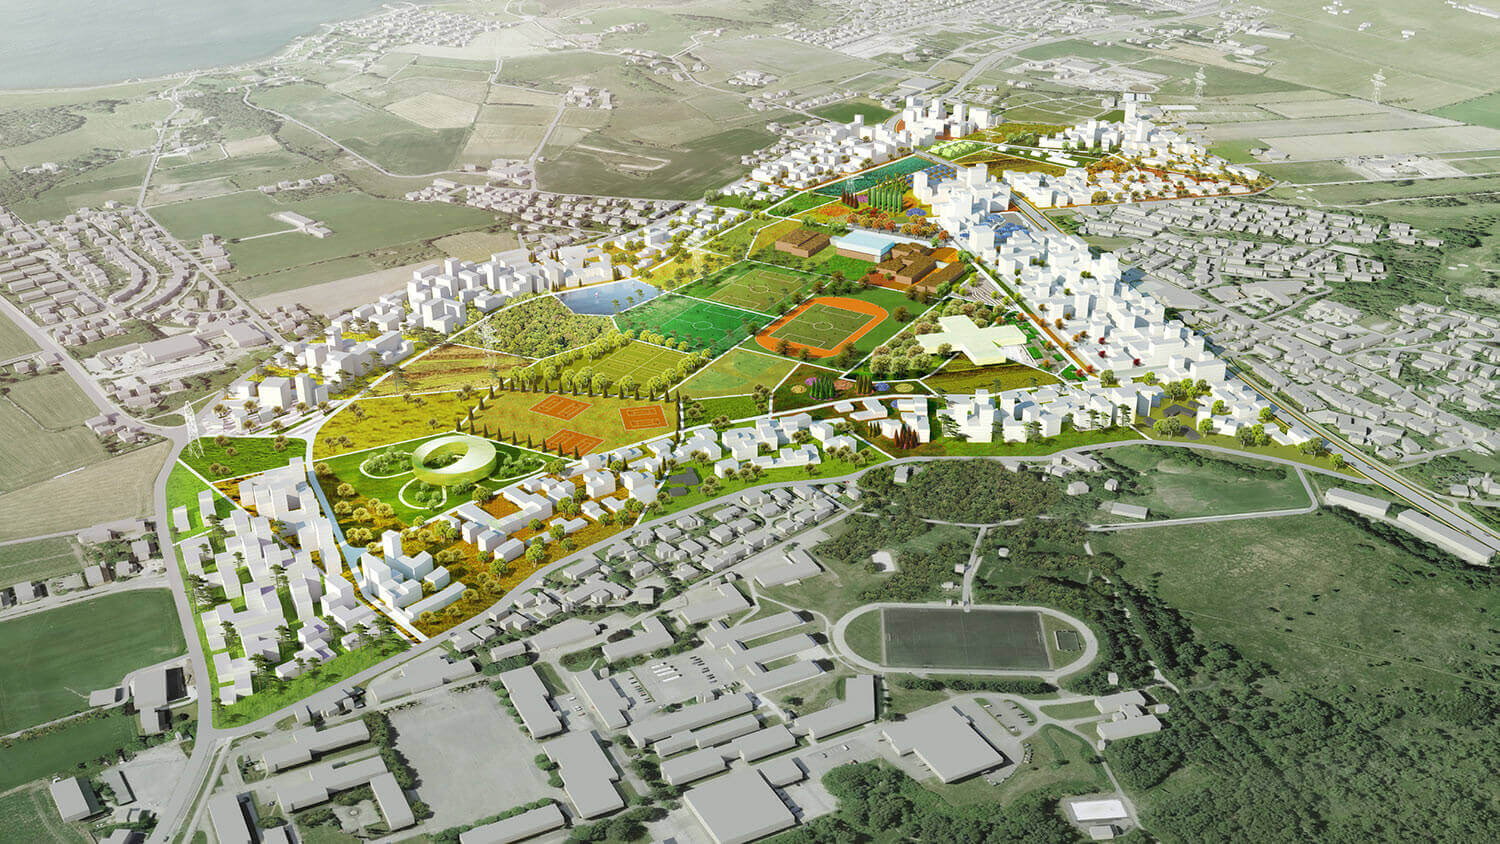 Madla-Revheim Masterplan Proposal